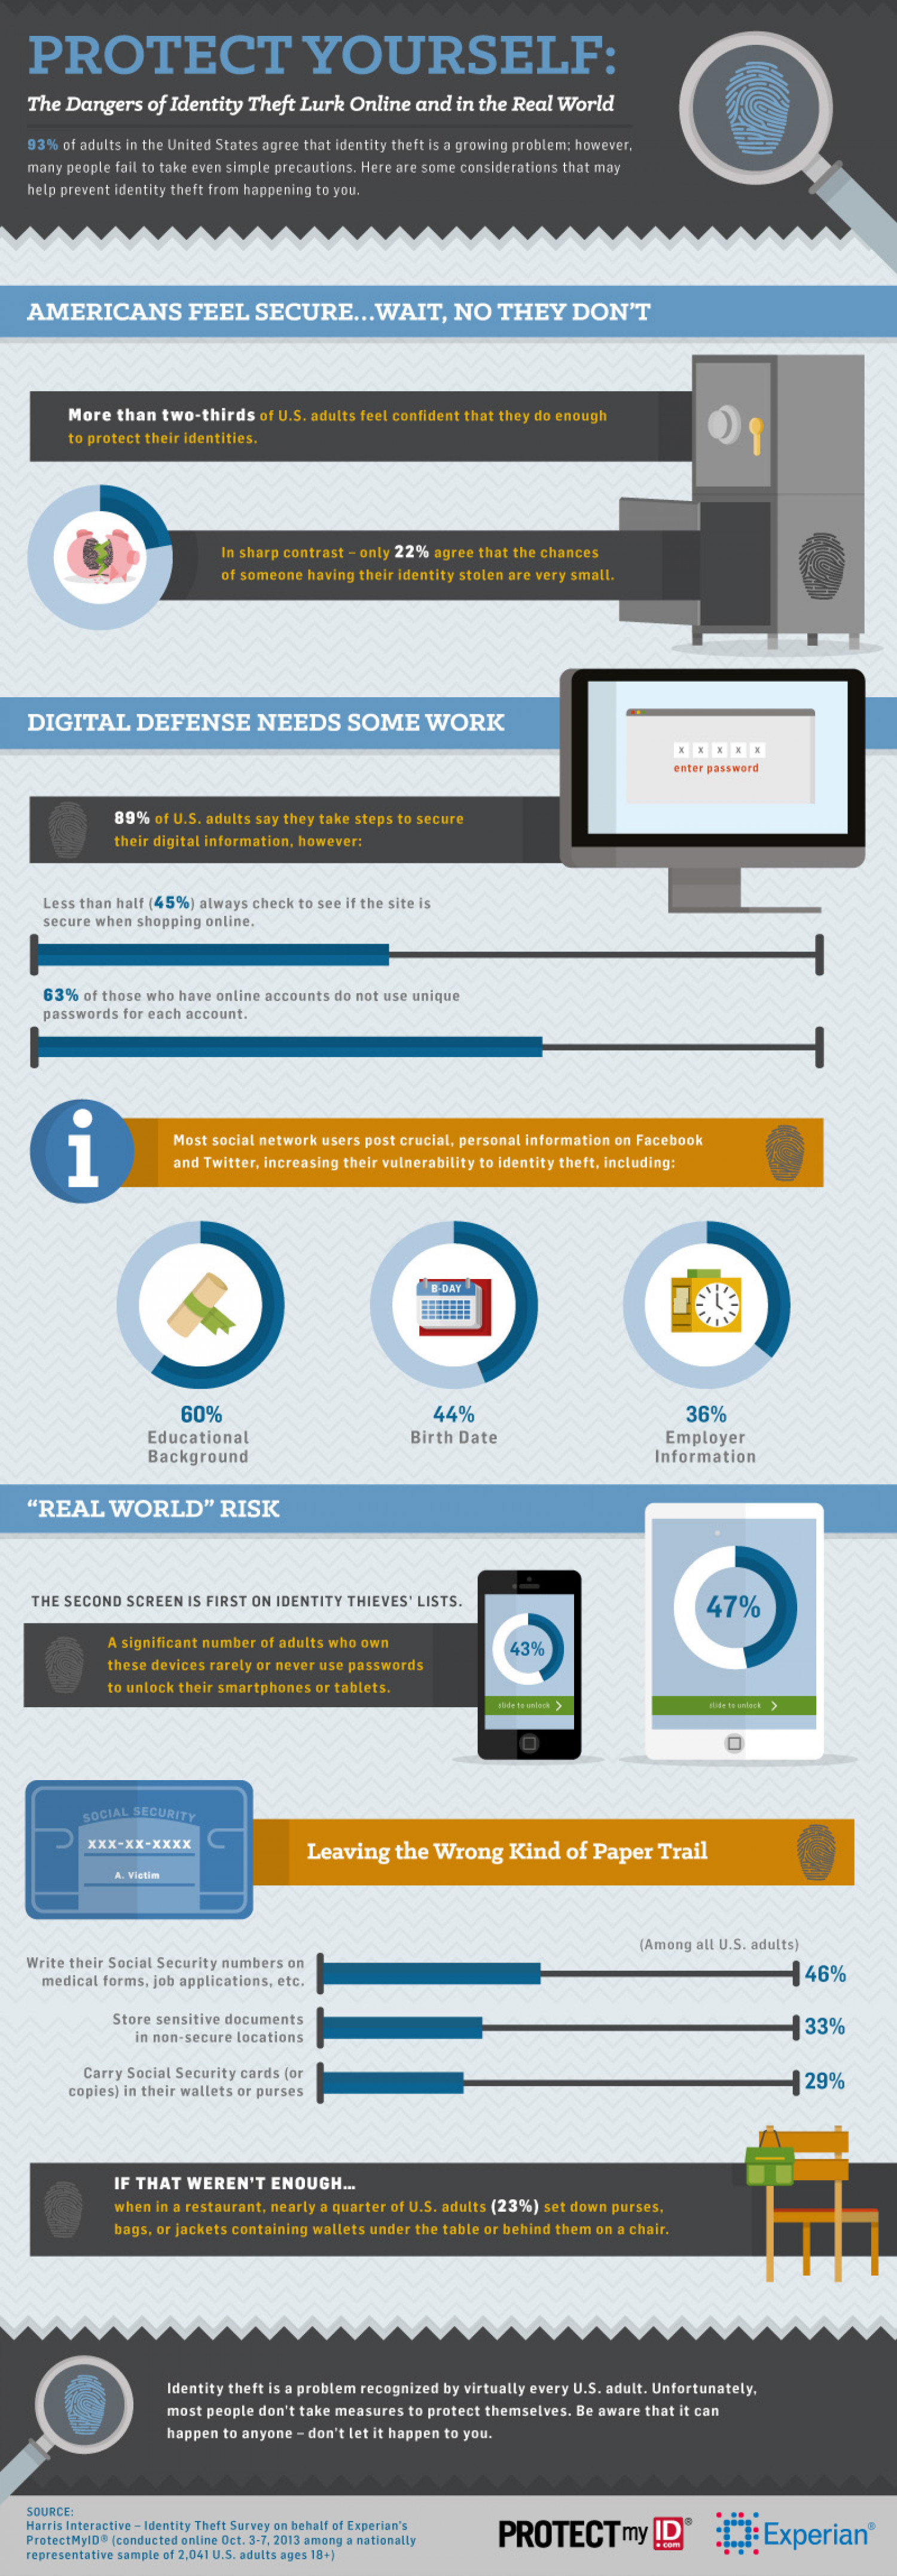 Identity Theft Online and Offline Infographic